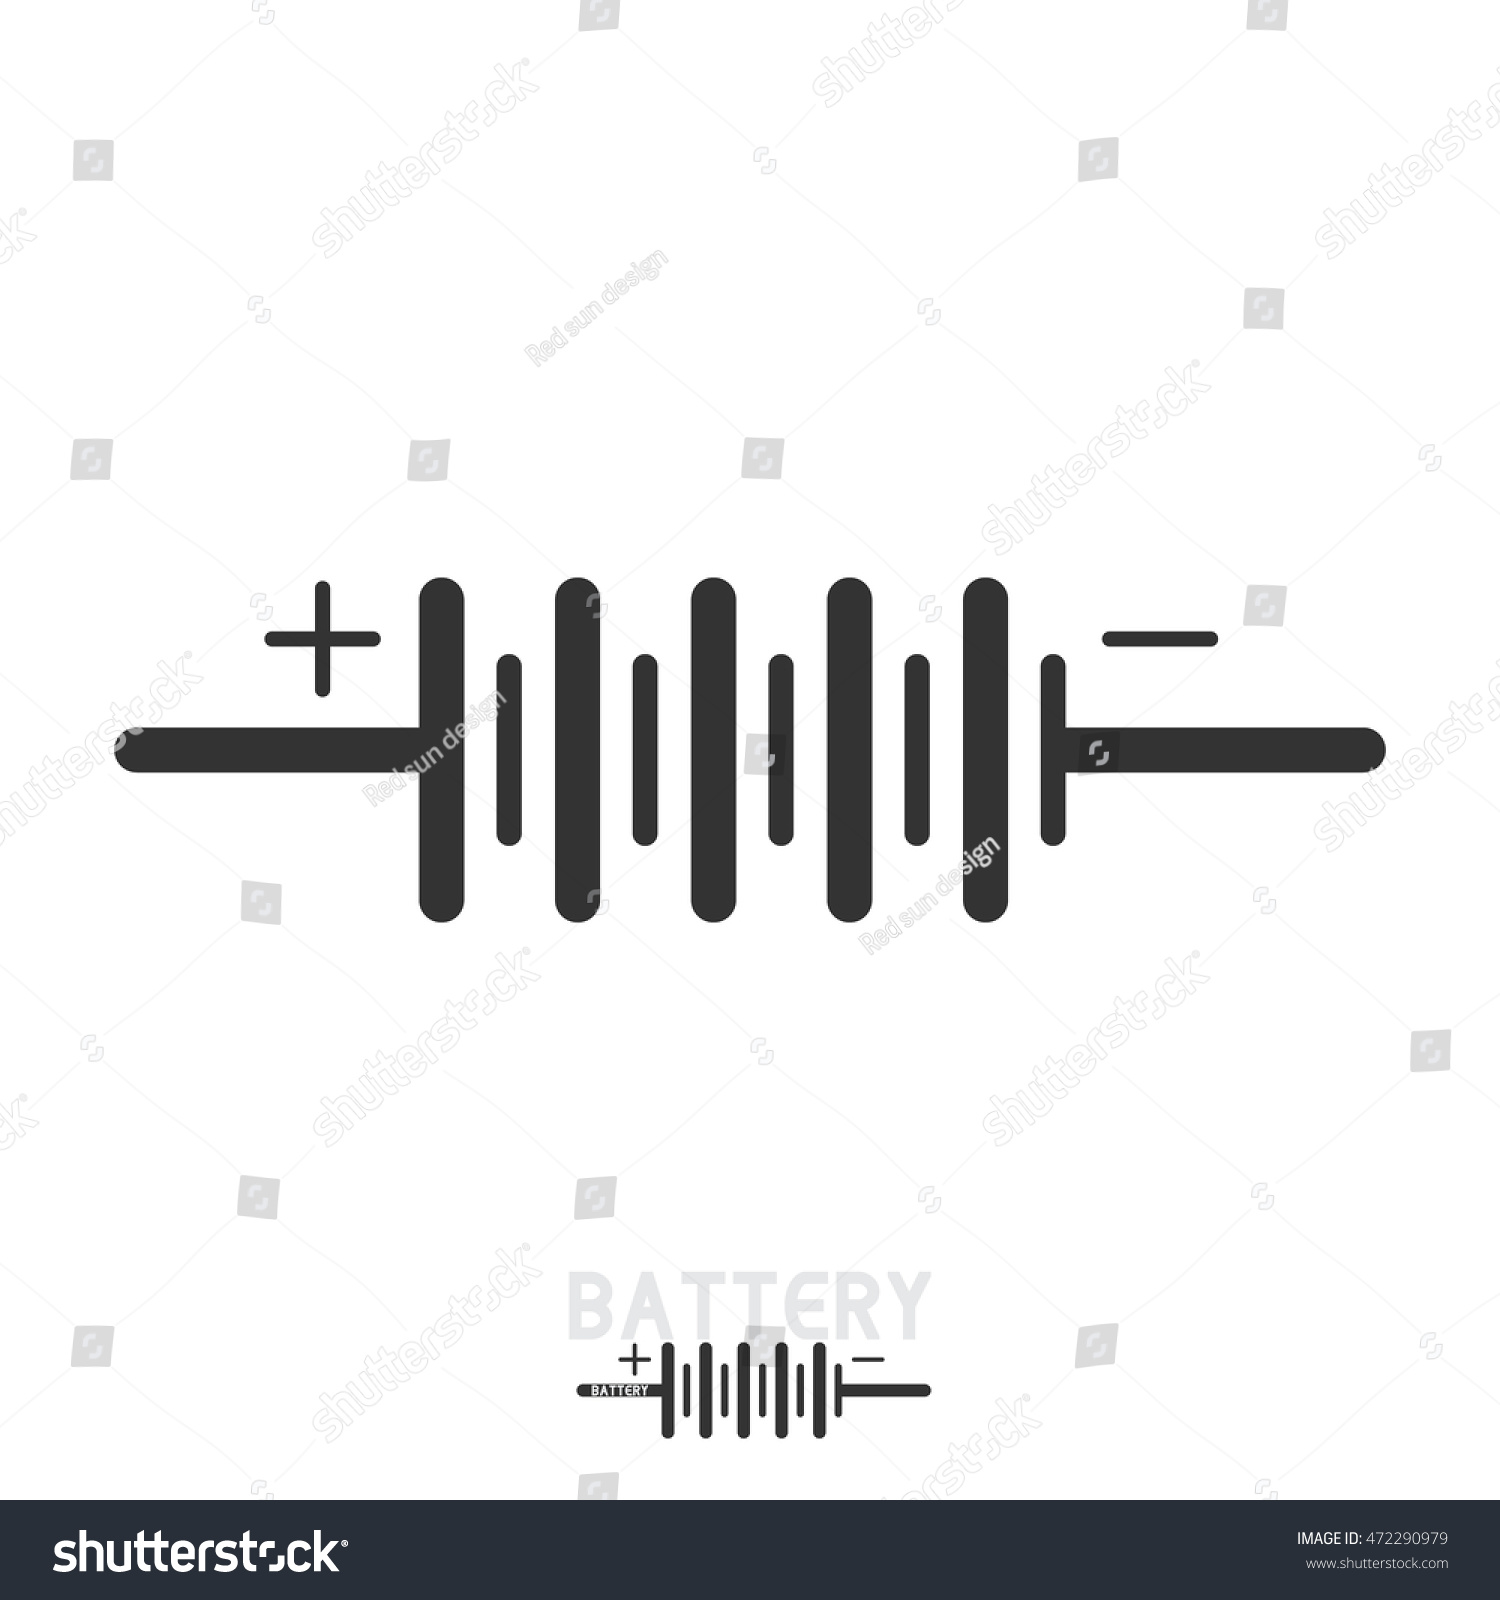 BATTERY Electronic Circuit Symbols Stock Photo (Photo, Vector ...